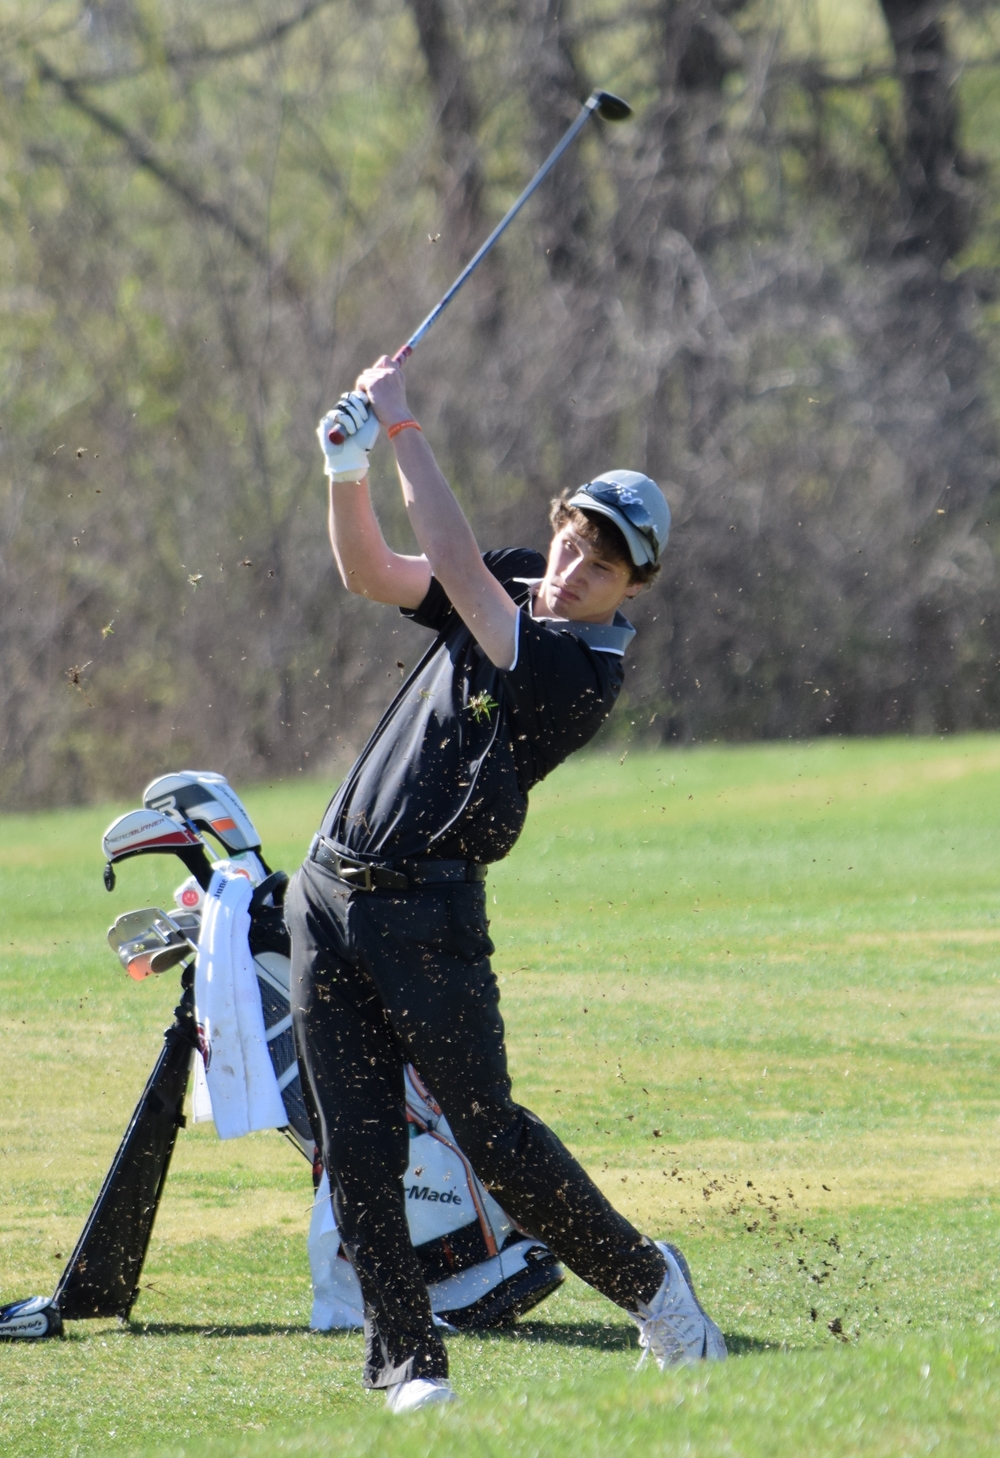 BRYCE MERENESS/Citizen photo Grass flies as Platte County senior Matt Madill hits an approach shot on Monday, March 28 at Shiloh Springs Golf Course in a dual with North Kansas City.